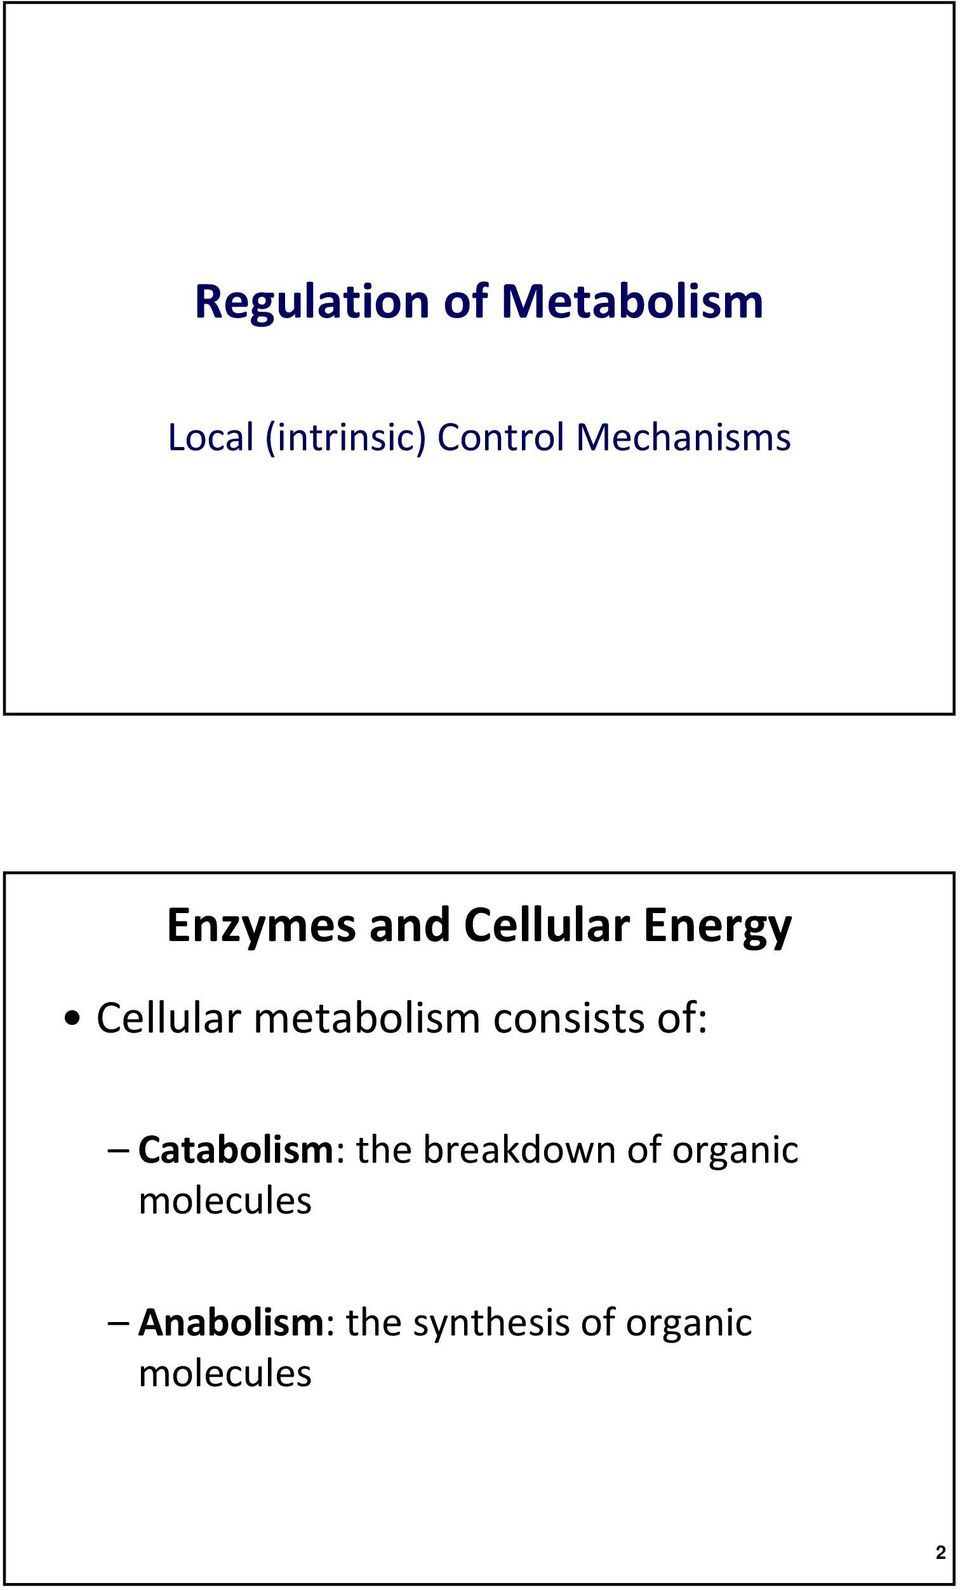 metabolism consists of: Catabolism: the breakdown of